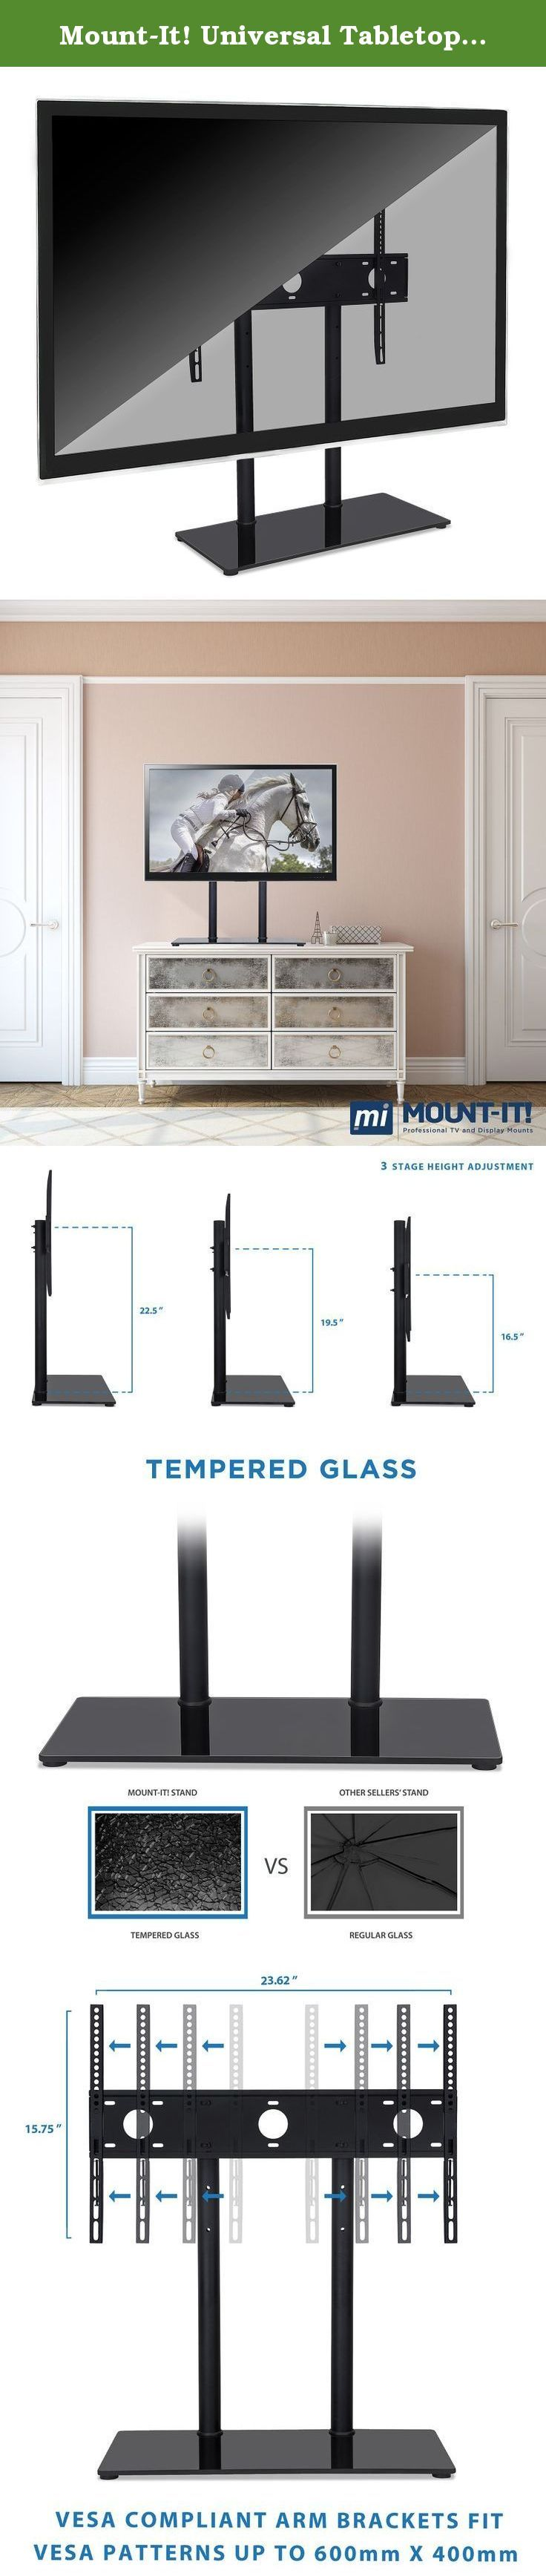 Mount-It! Universal Tabletop TV Stand Mount and AV Media Glass Shelf, TV Mount Bracket Fits 32, 37, 40, 47, 50, 55 Inch TVs, Height Adjustable, VESA 600x400, Black (MI-846). Mount-It! MI-846 contemporary TV mount and media component stand combo features a beautiful black silk tempered glass shelves with spacious shelving for all of your surround sound system components, Blu-ray player, game consoles, cable box and place other media components. The built-in TV mount is VESA compatible and...